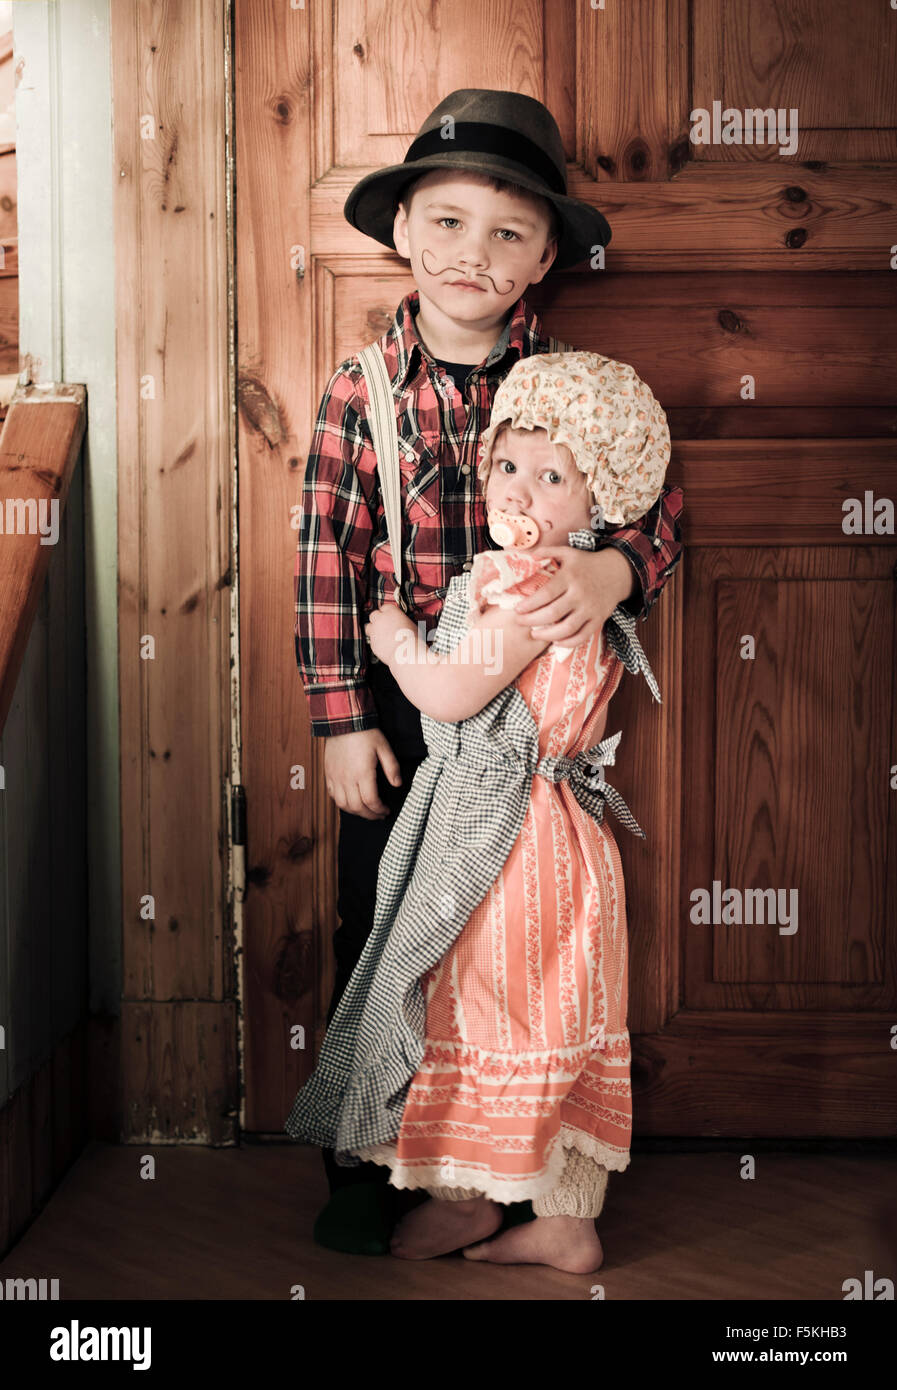 Sweden, Sodermanland, Strangnas, Boy (4-5) and girl (2-3) at home in costumes - Stock Image